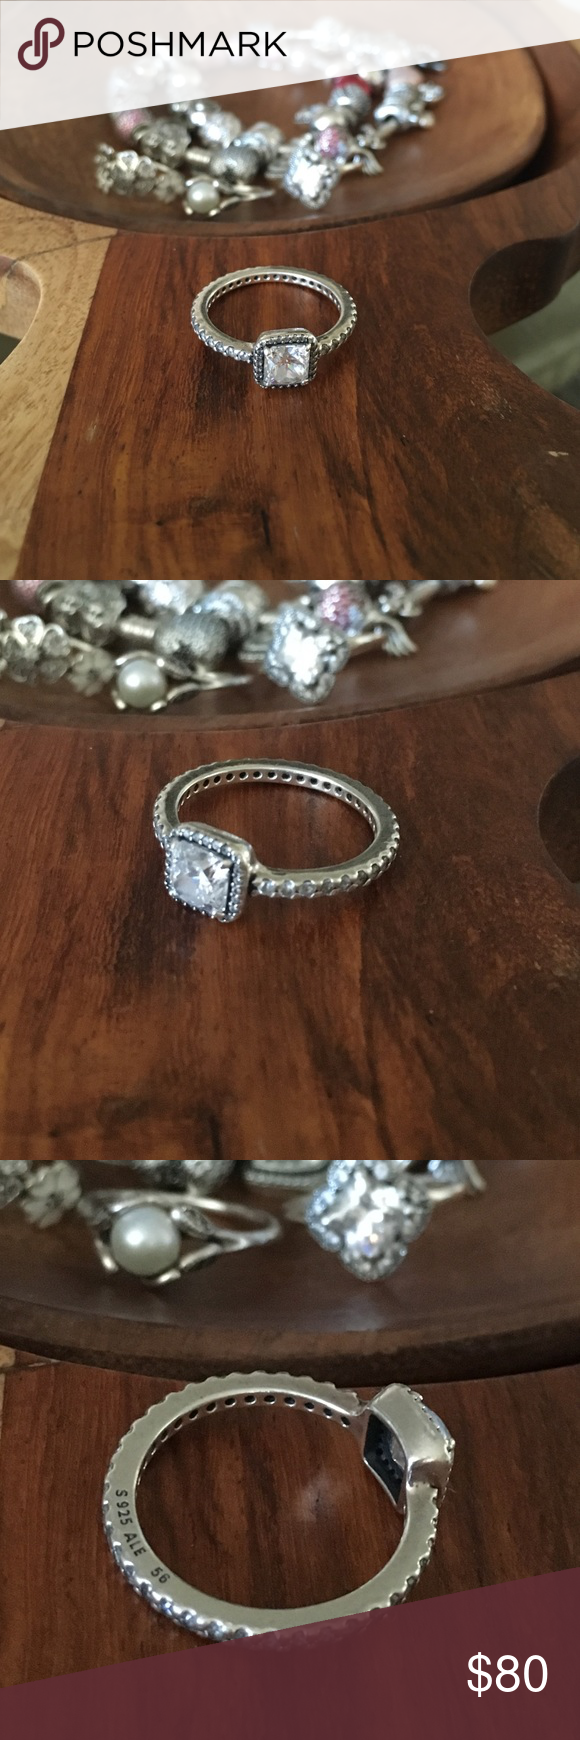 4bf79d7f5 Pandora Ring size 56 Pandora Timeless Elegance Ring 56 which is a size  7.5-8 Pandora Jewelry Rings